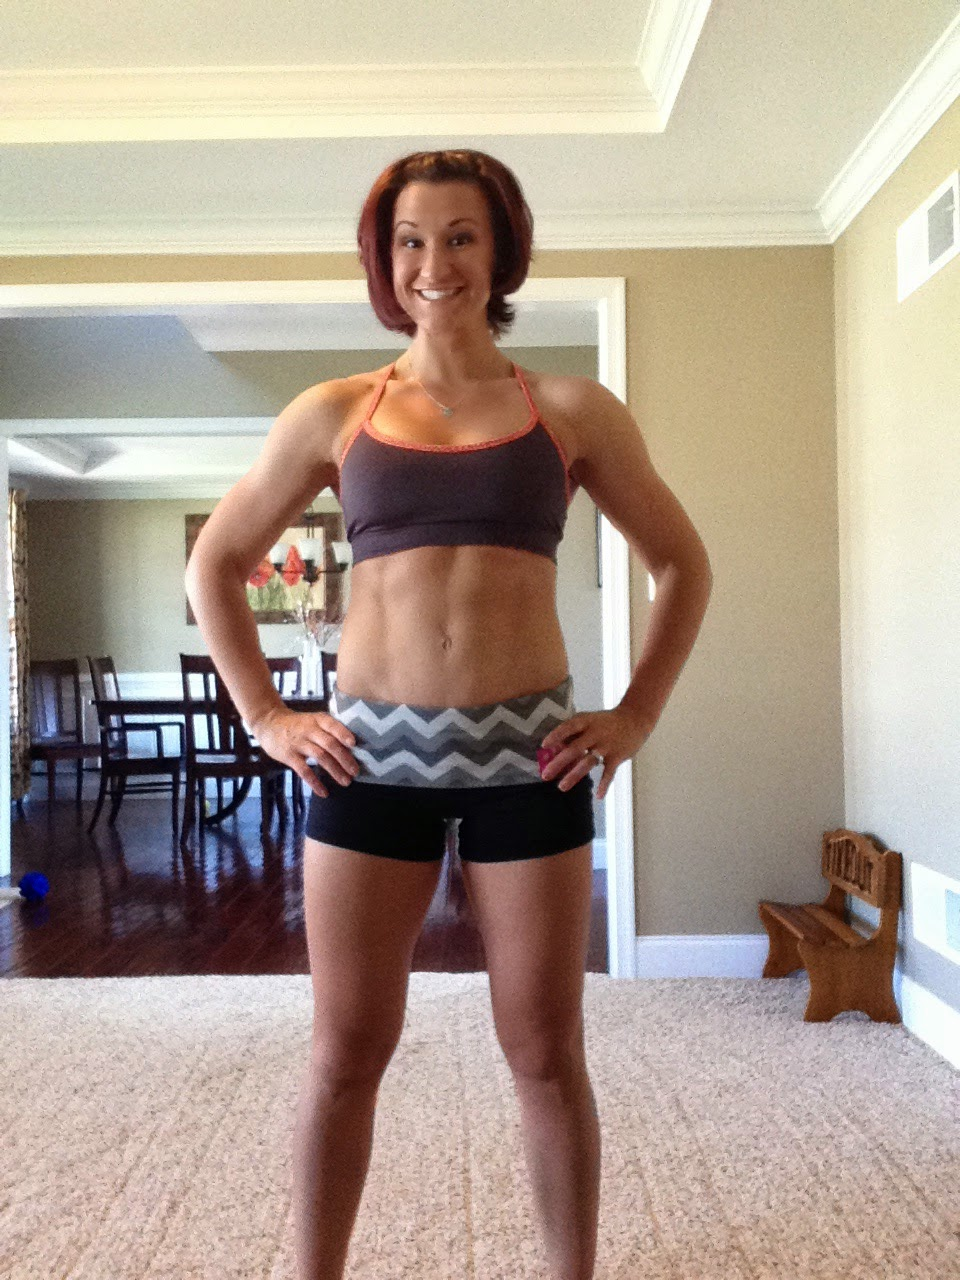 Deidra Penrose, elite beach body coach, health and fitness coach, NPC Figure Meal plan, weight loss meal plan, fitness, figure competition, beach body coach, team beach body coach, elite beach body coach, team beach body, weight loss programs, shakeology, home fitness programs, fitness motivation, healthy meal plan, accountability,  clean eating, healthy eating, diet, protein shake, NCP women's competition, fitness challenge